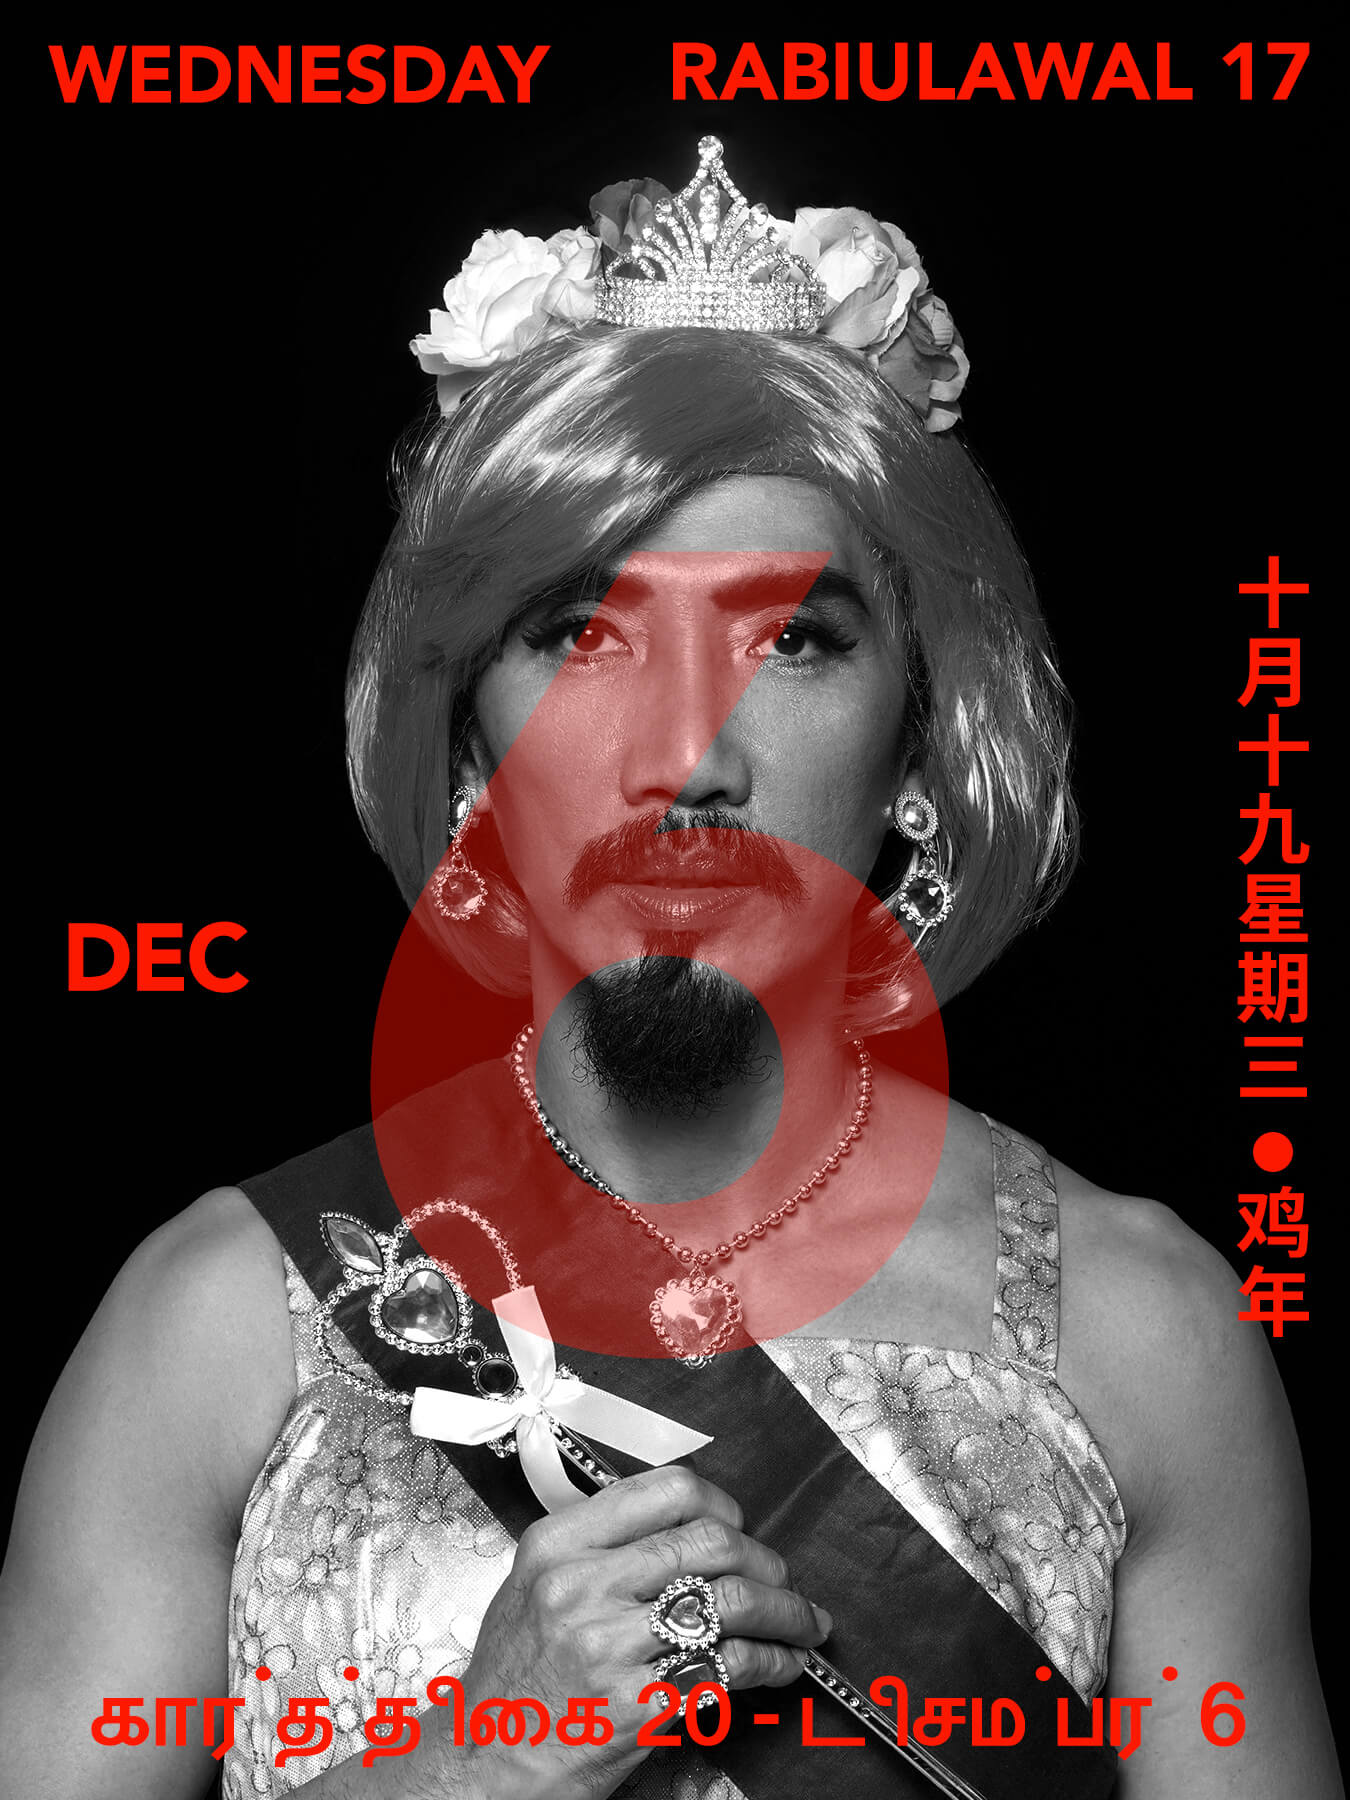 6 Dec 2017 Derong is photographed in a complete fancy prom queen outfit